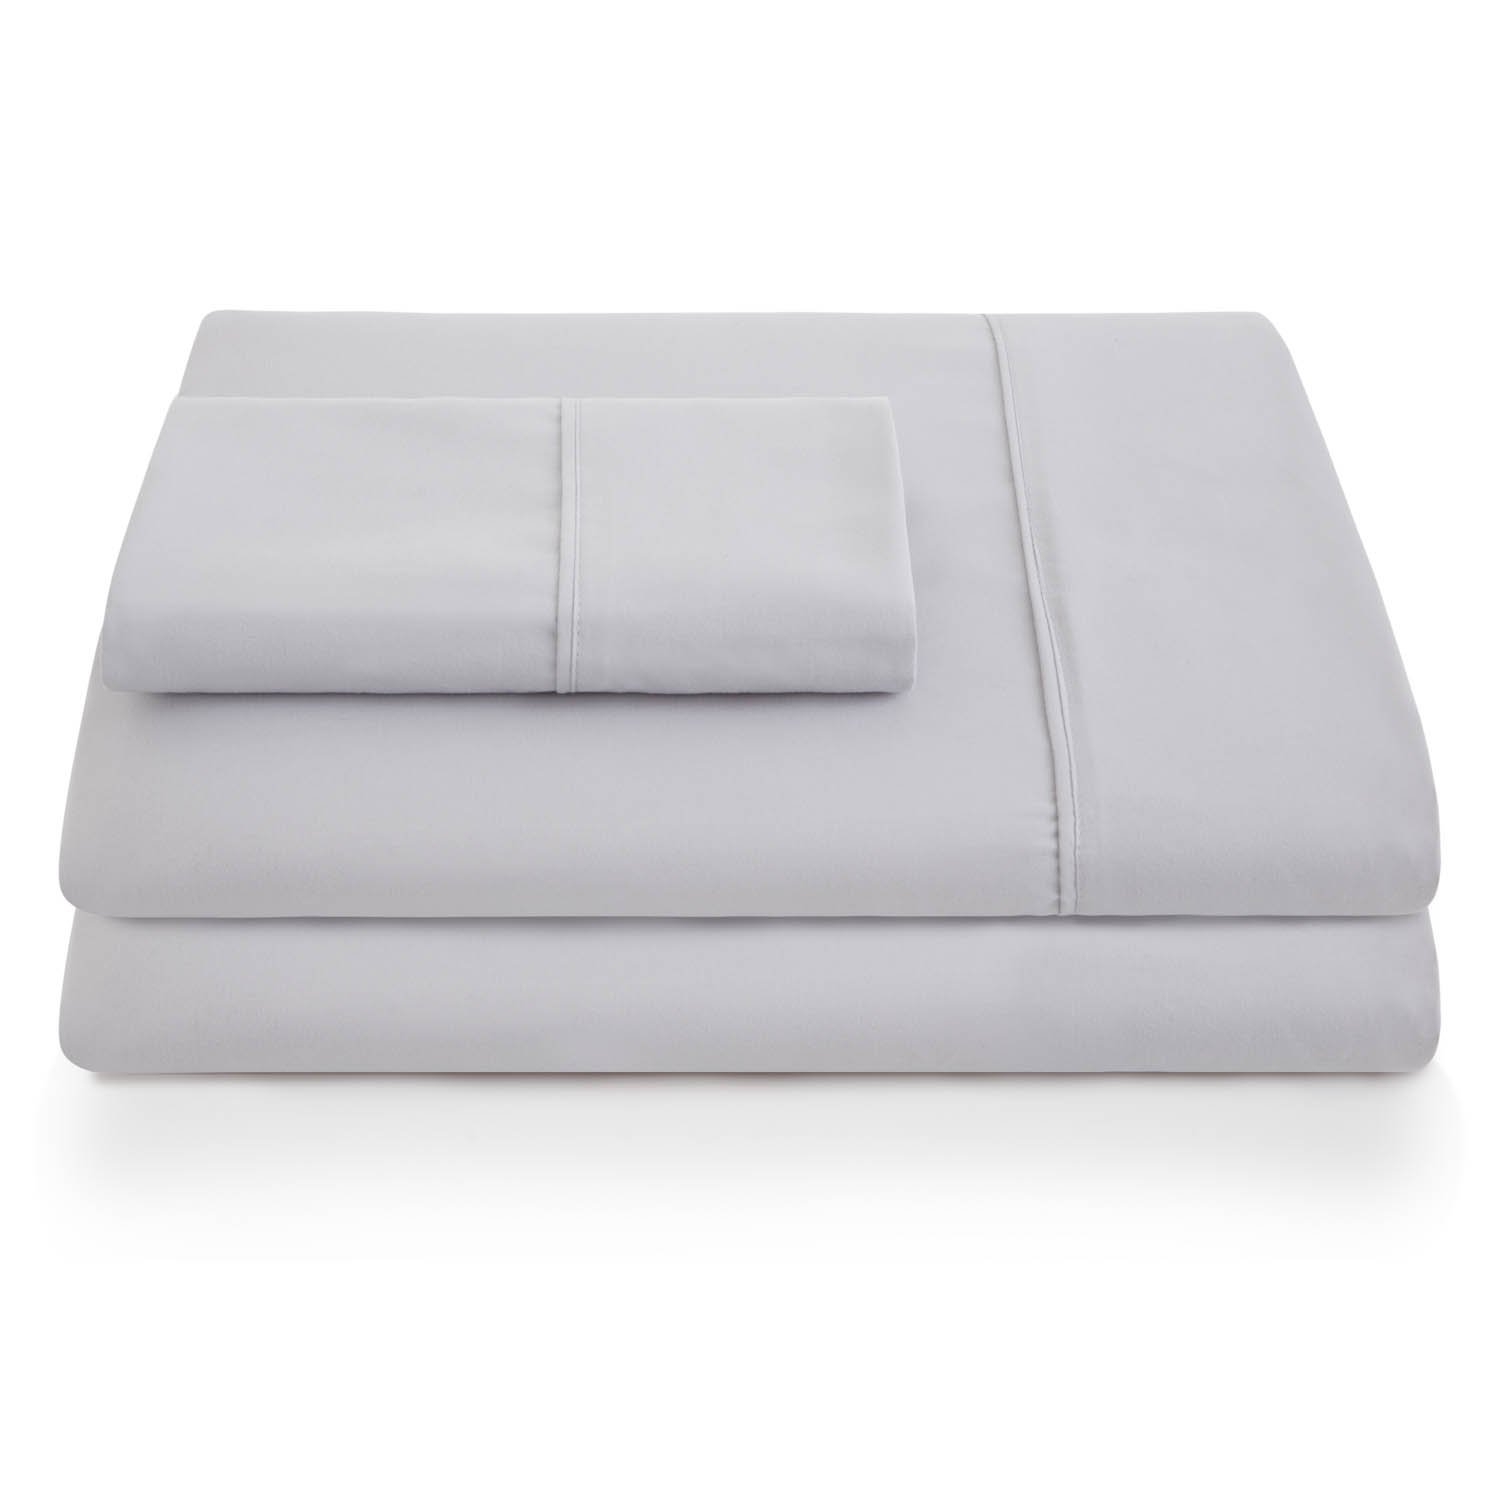 LINENSPA Ultra Soft, Wrinkle Resistant Double Brushed Microfiber Pillowcase Set Grey